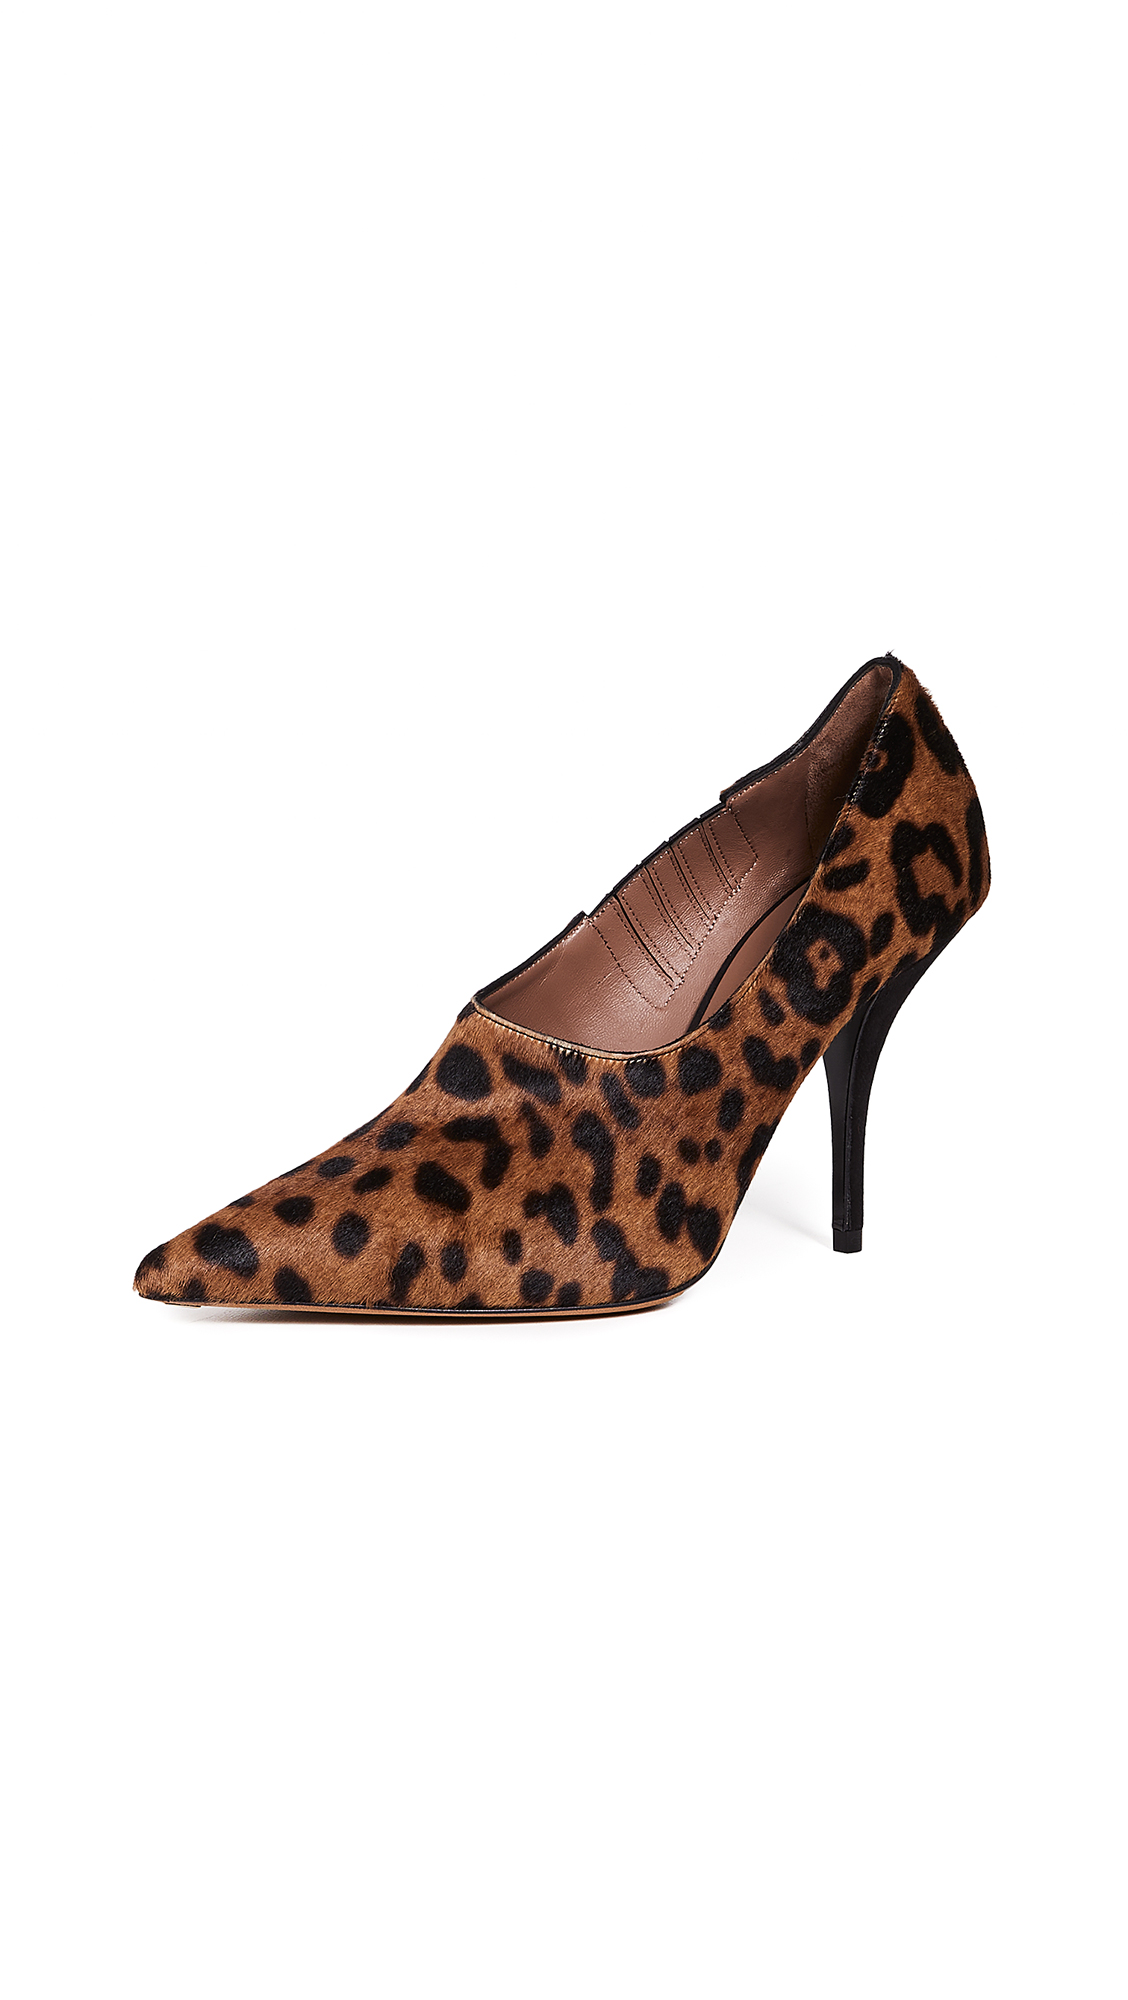 Tabitha Simmons Oona Leopard Pumps - Leopard